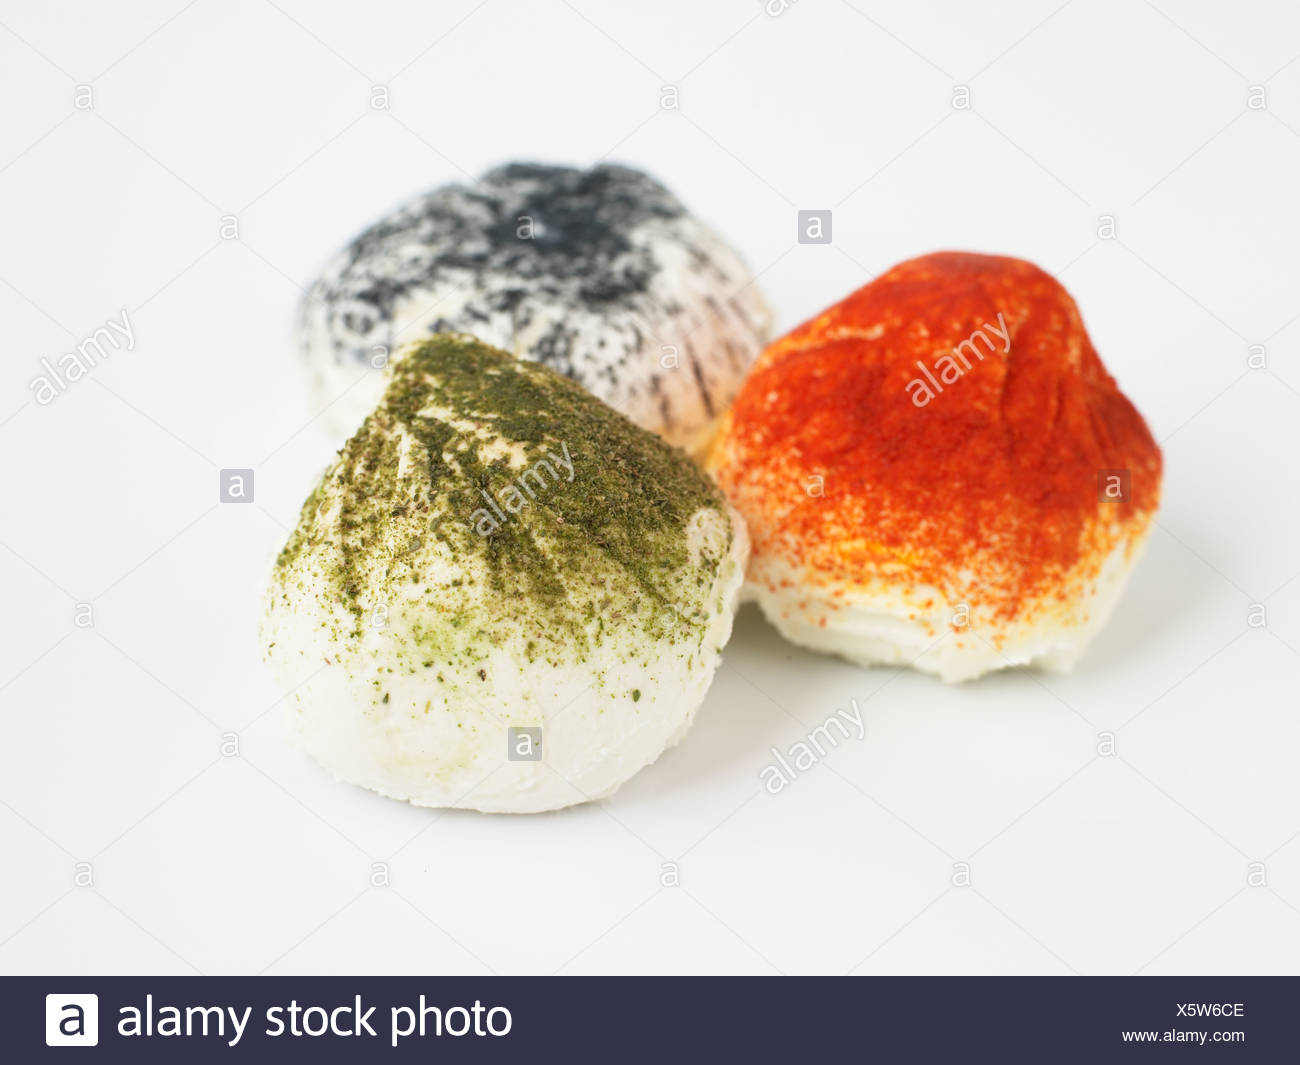 French Figuette goat's cheeses on white background, ash, paprika and tarragon, close-up - Stock Image